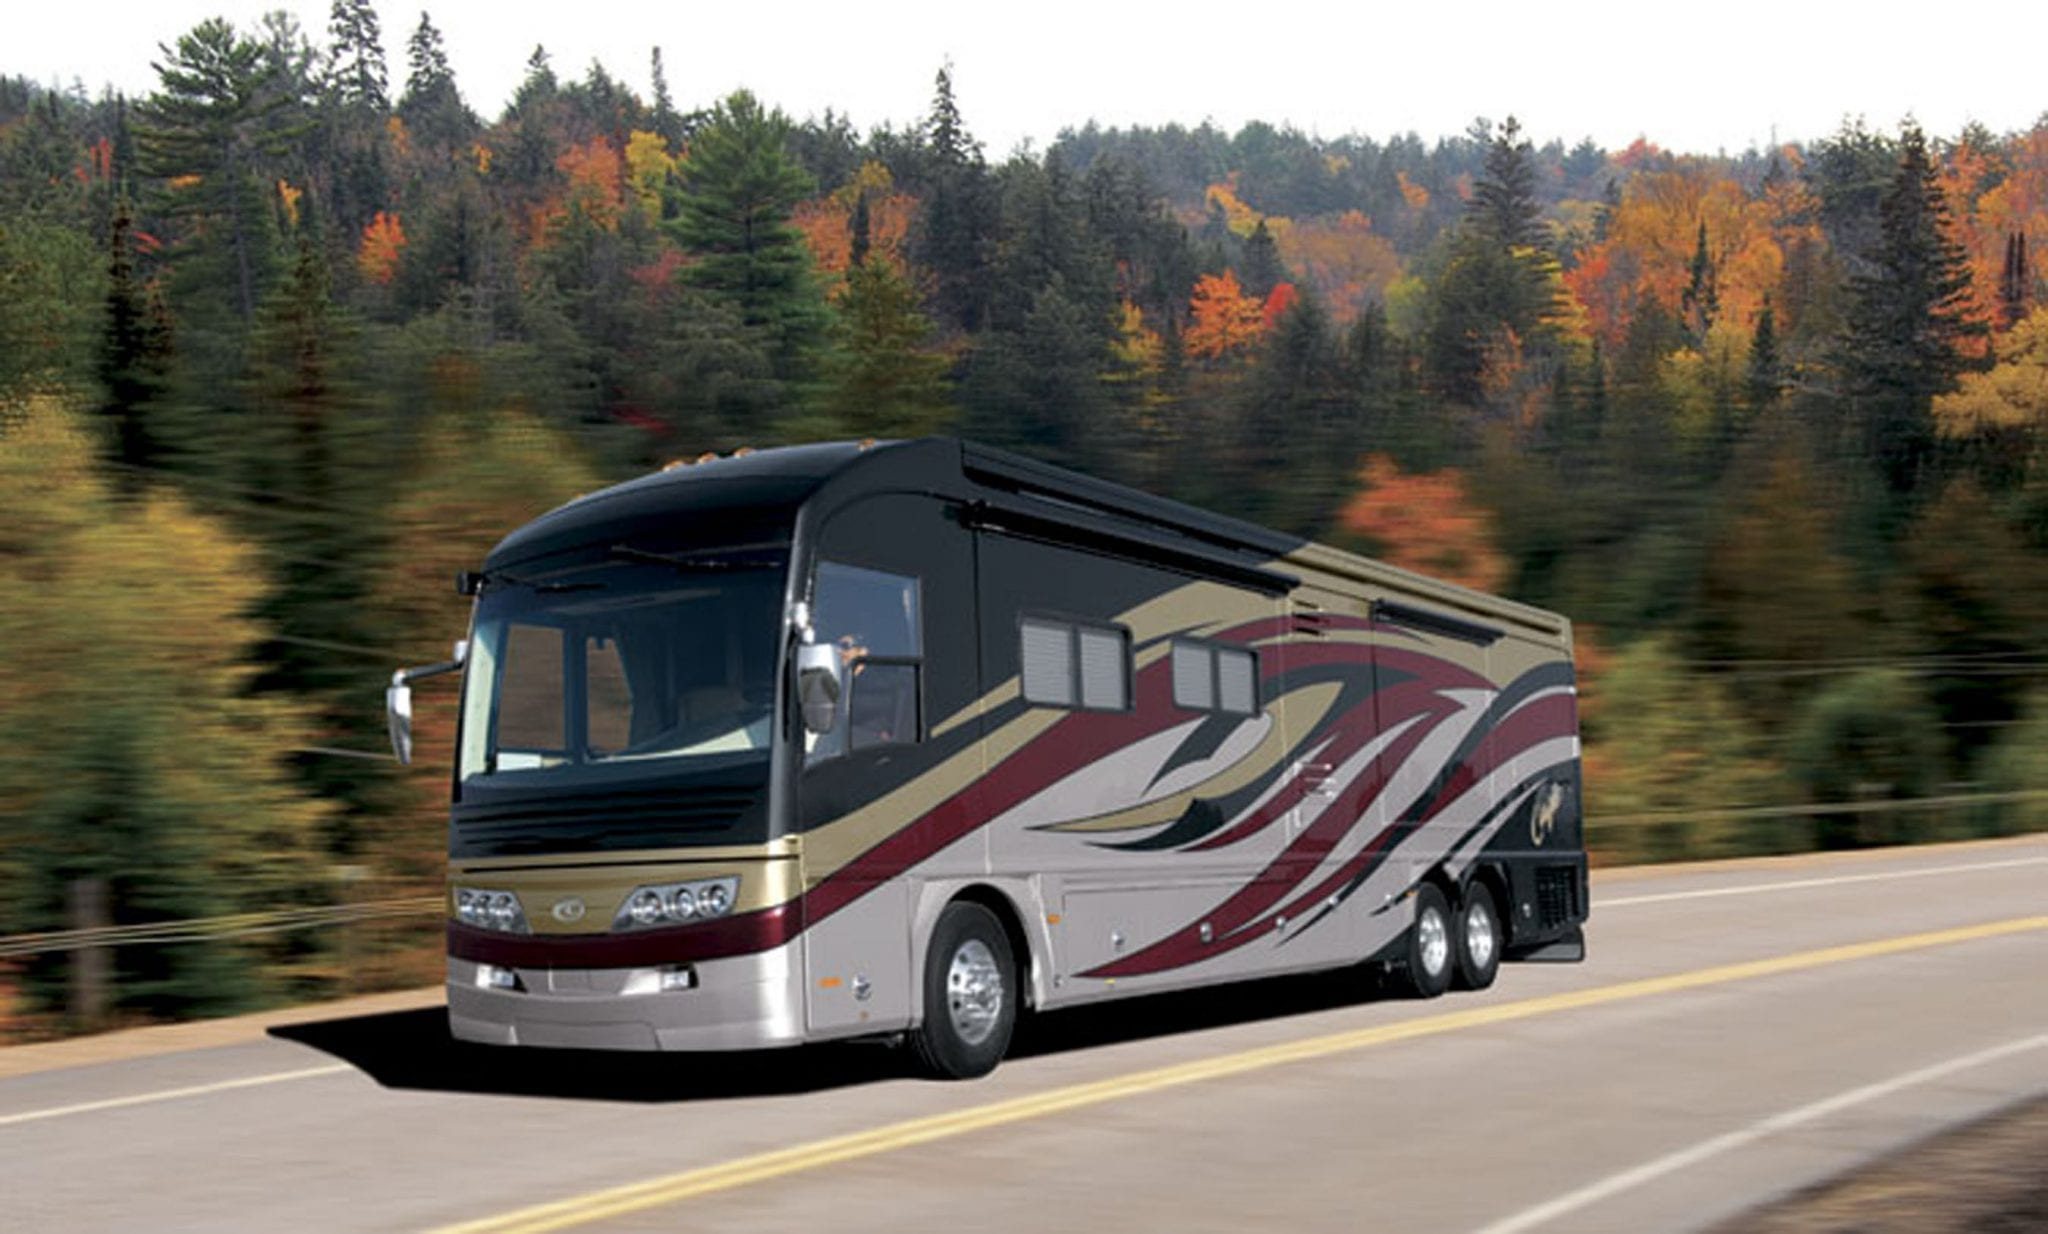 We Drive Your Rv Rented Truck Driver